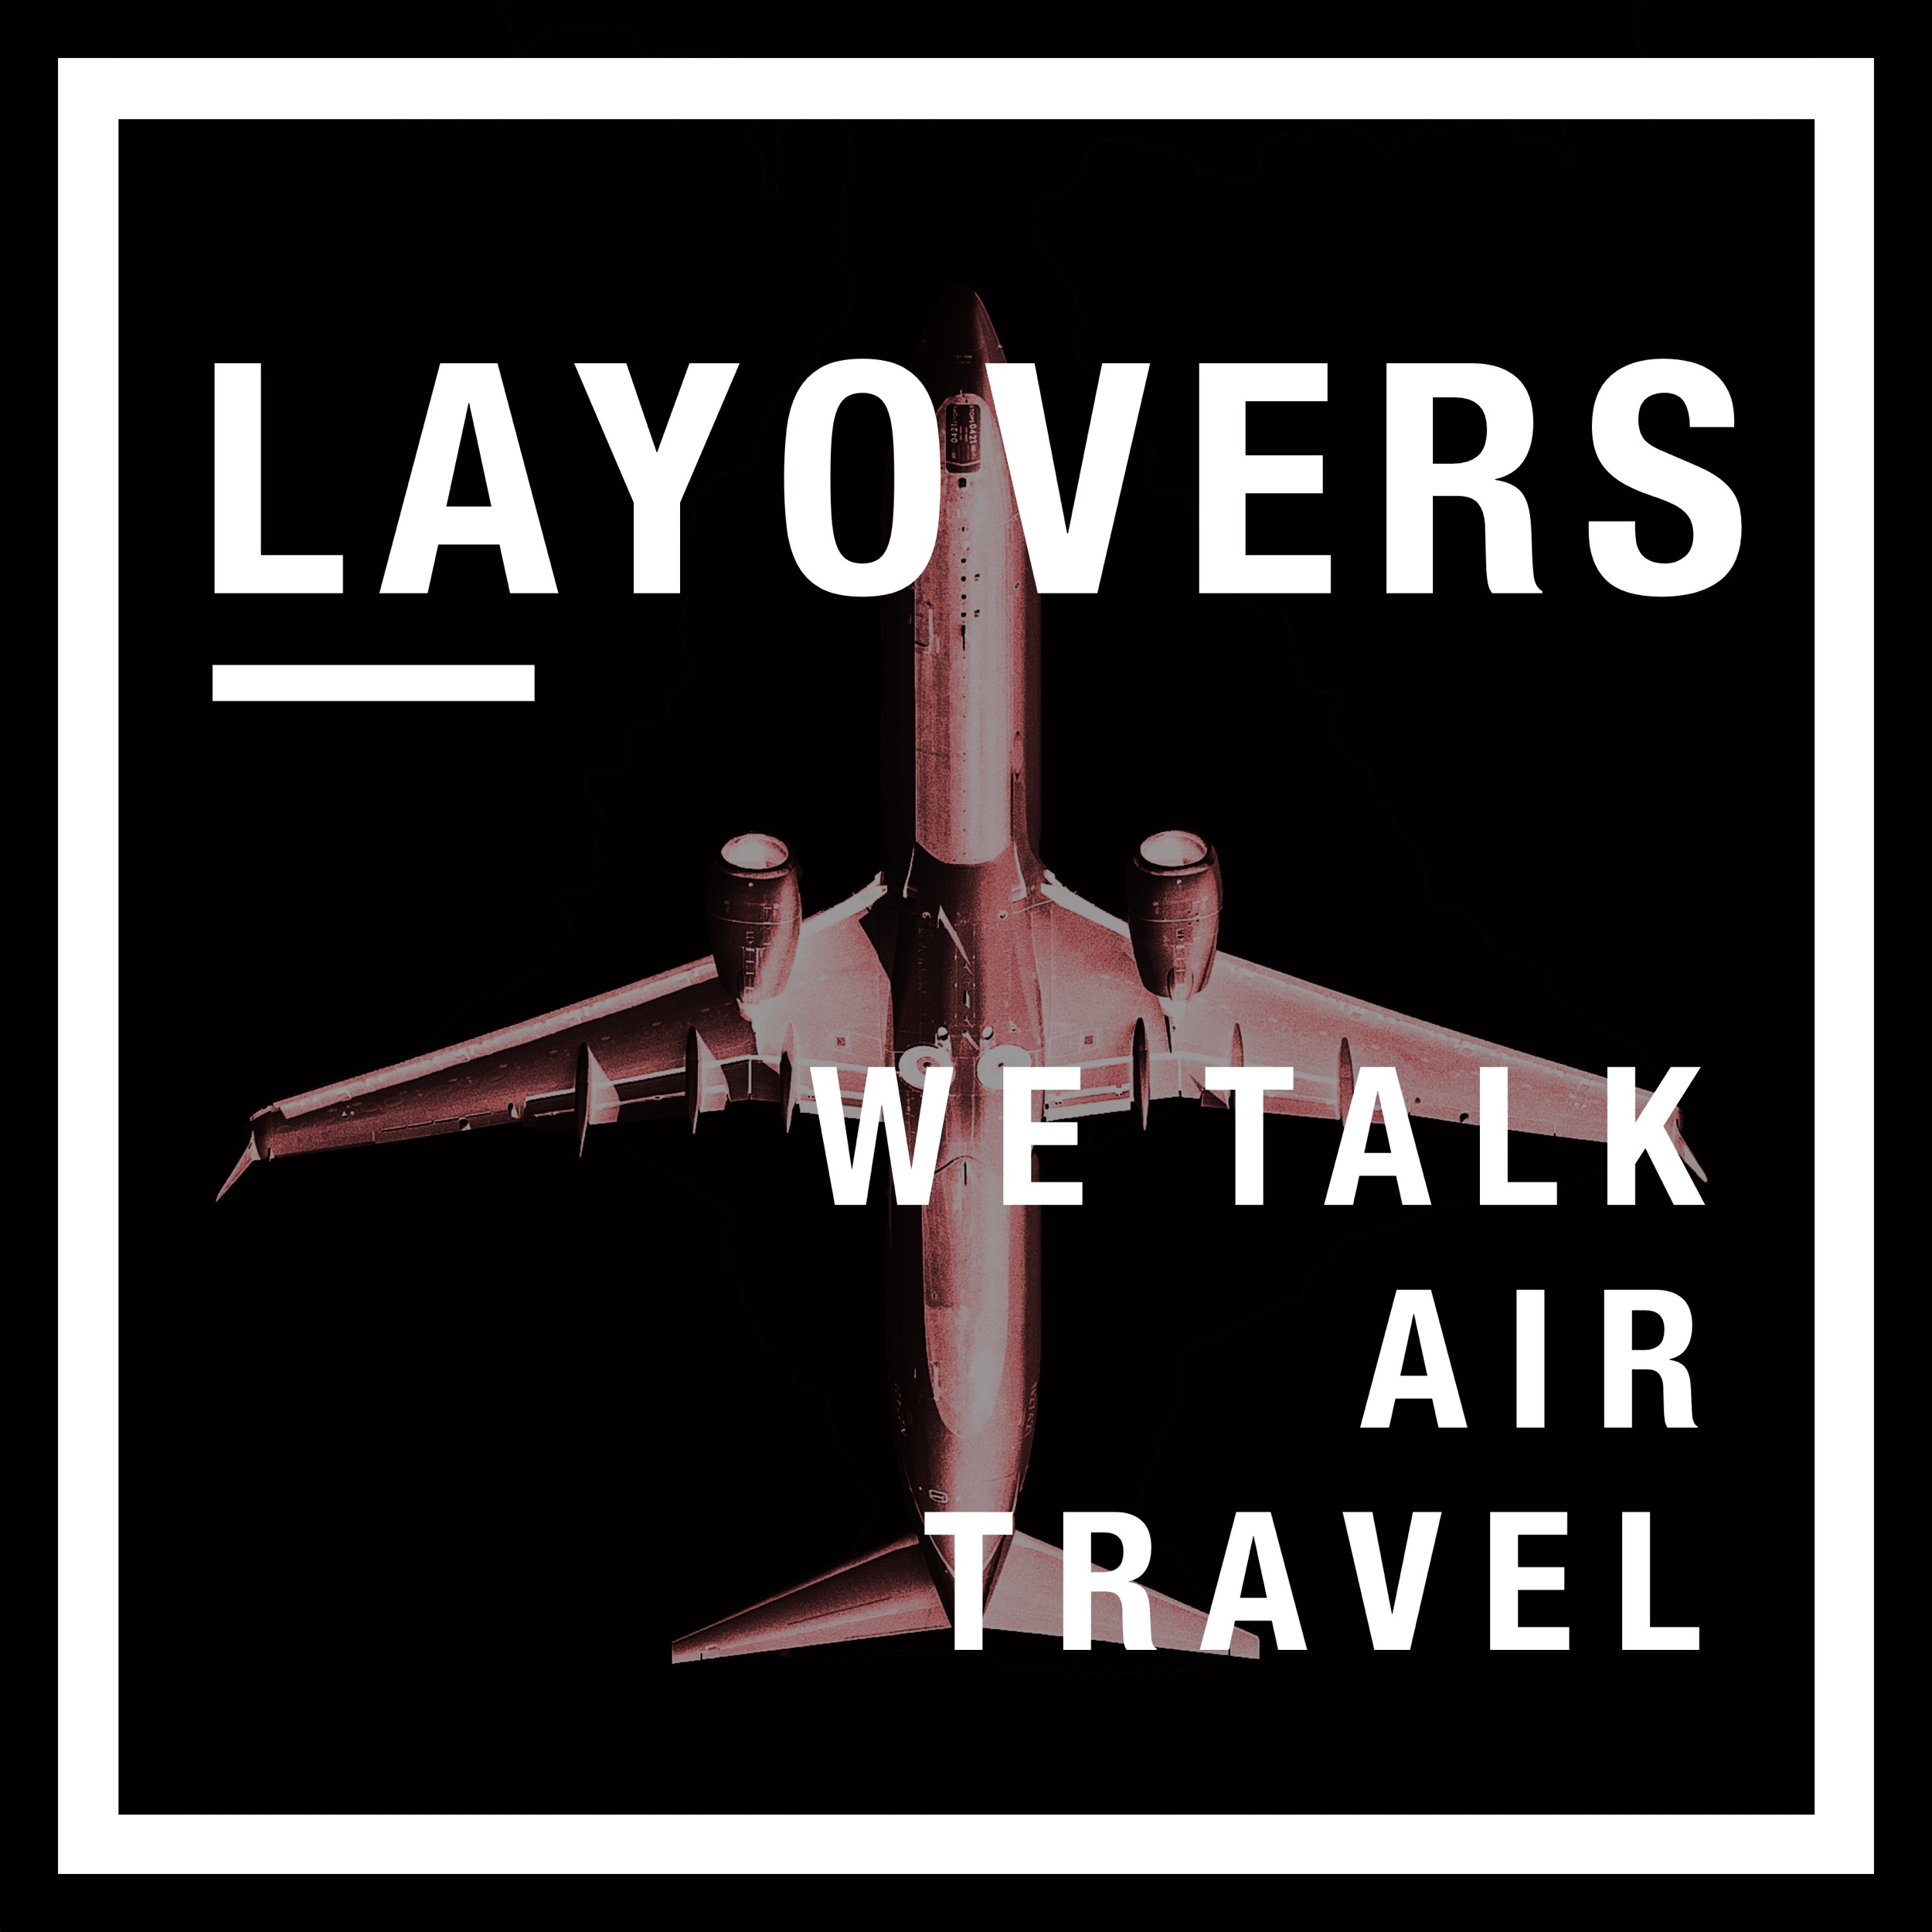 Layovers - Layovers is a podcast by super-frequent flyers Paul Papadimitriou and Alex Hunter. Paul and Alex log serious miles and probably know more about travel than even some people who work in the industry.The podcast covers a wide-ranging lineup of travel innovations, flight reviews (usually premium cabins), airport lounge reviews, current aviation topics, and an in-depth review of an airport at the end of the each episode. Paul and Alex are U.K. based, so a lot of the content is European focused. Though, they make an honest effort to cover global topics.After listening to just a few episodes with Paul and Alex, you'll feel as if you've known them for years. Layovers is what originally inspired me to launch Officer Wayfinder. Start listening today and you'll never know what inspiration you'll find (spoiler alert - it'll probably be to travel more).Side note - be sure to check out Alex's wonderful travel vlog, Attaché, on YouTube.Frequency: Approximately every two to three weeksLength: 45-90 minutes on average